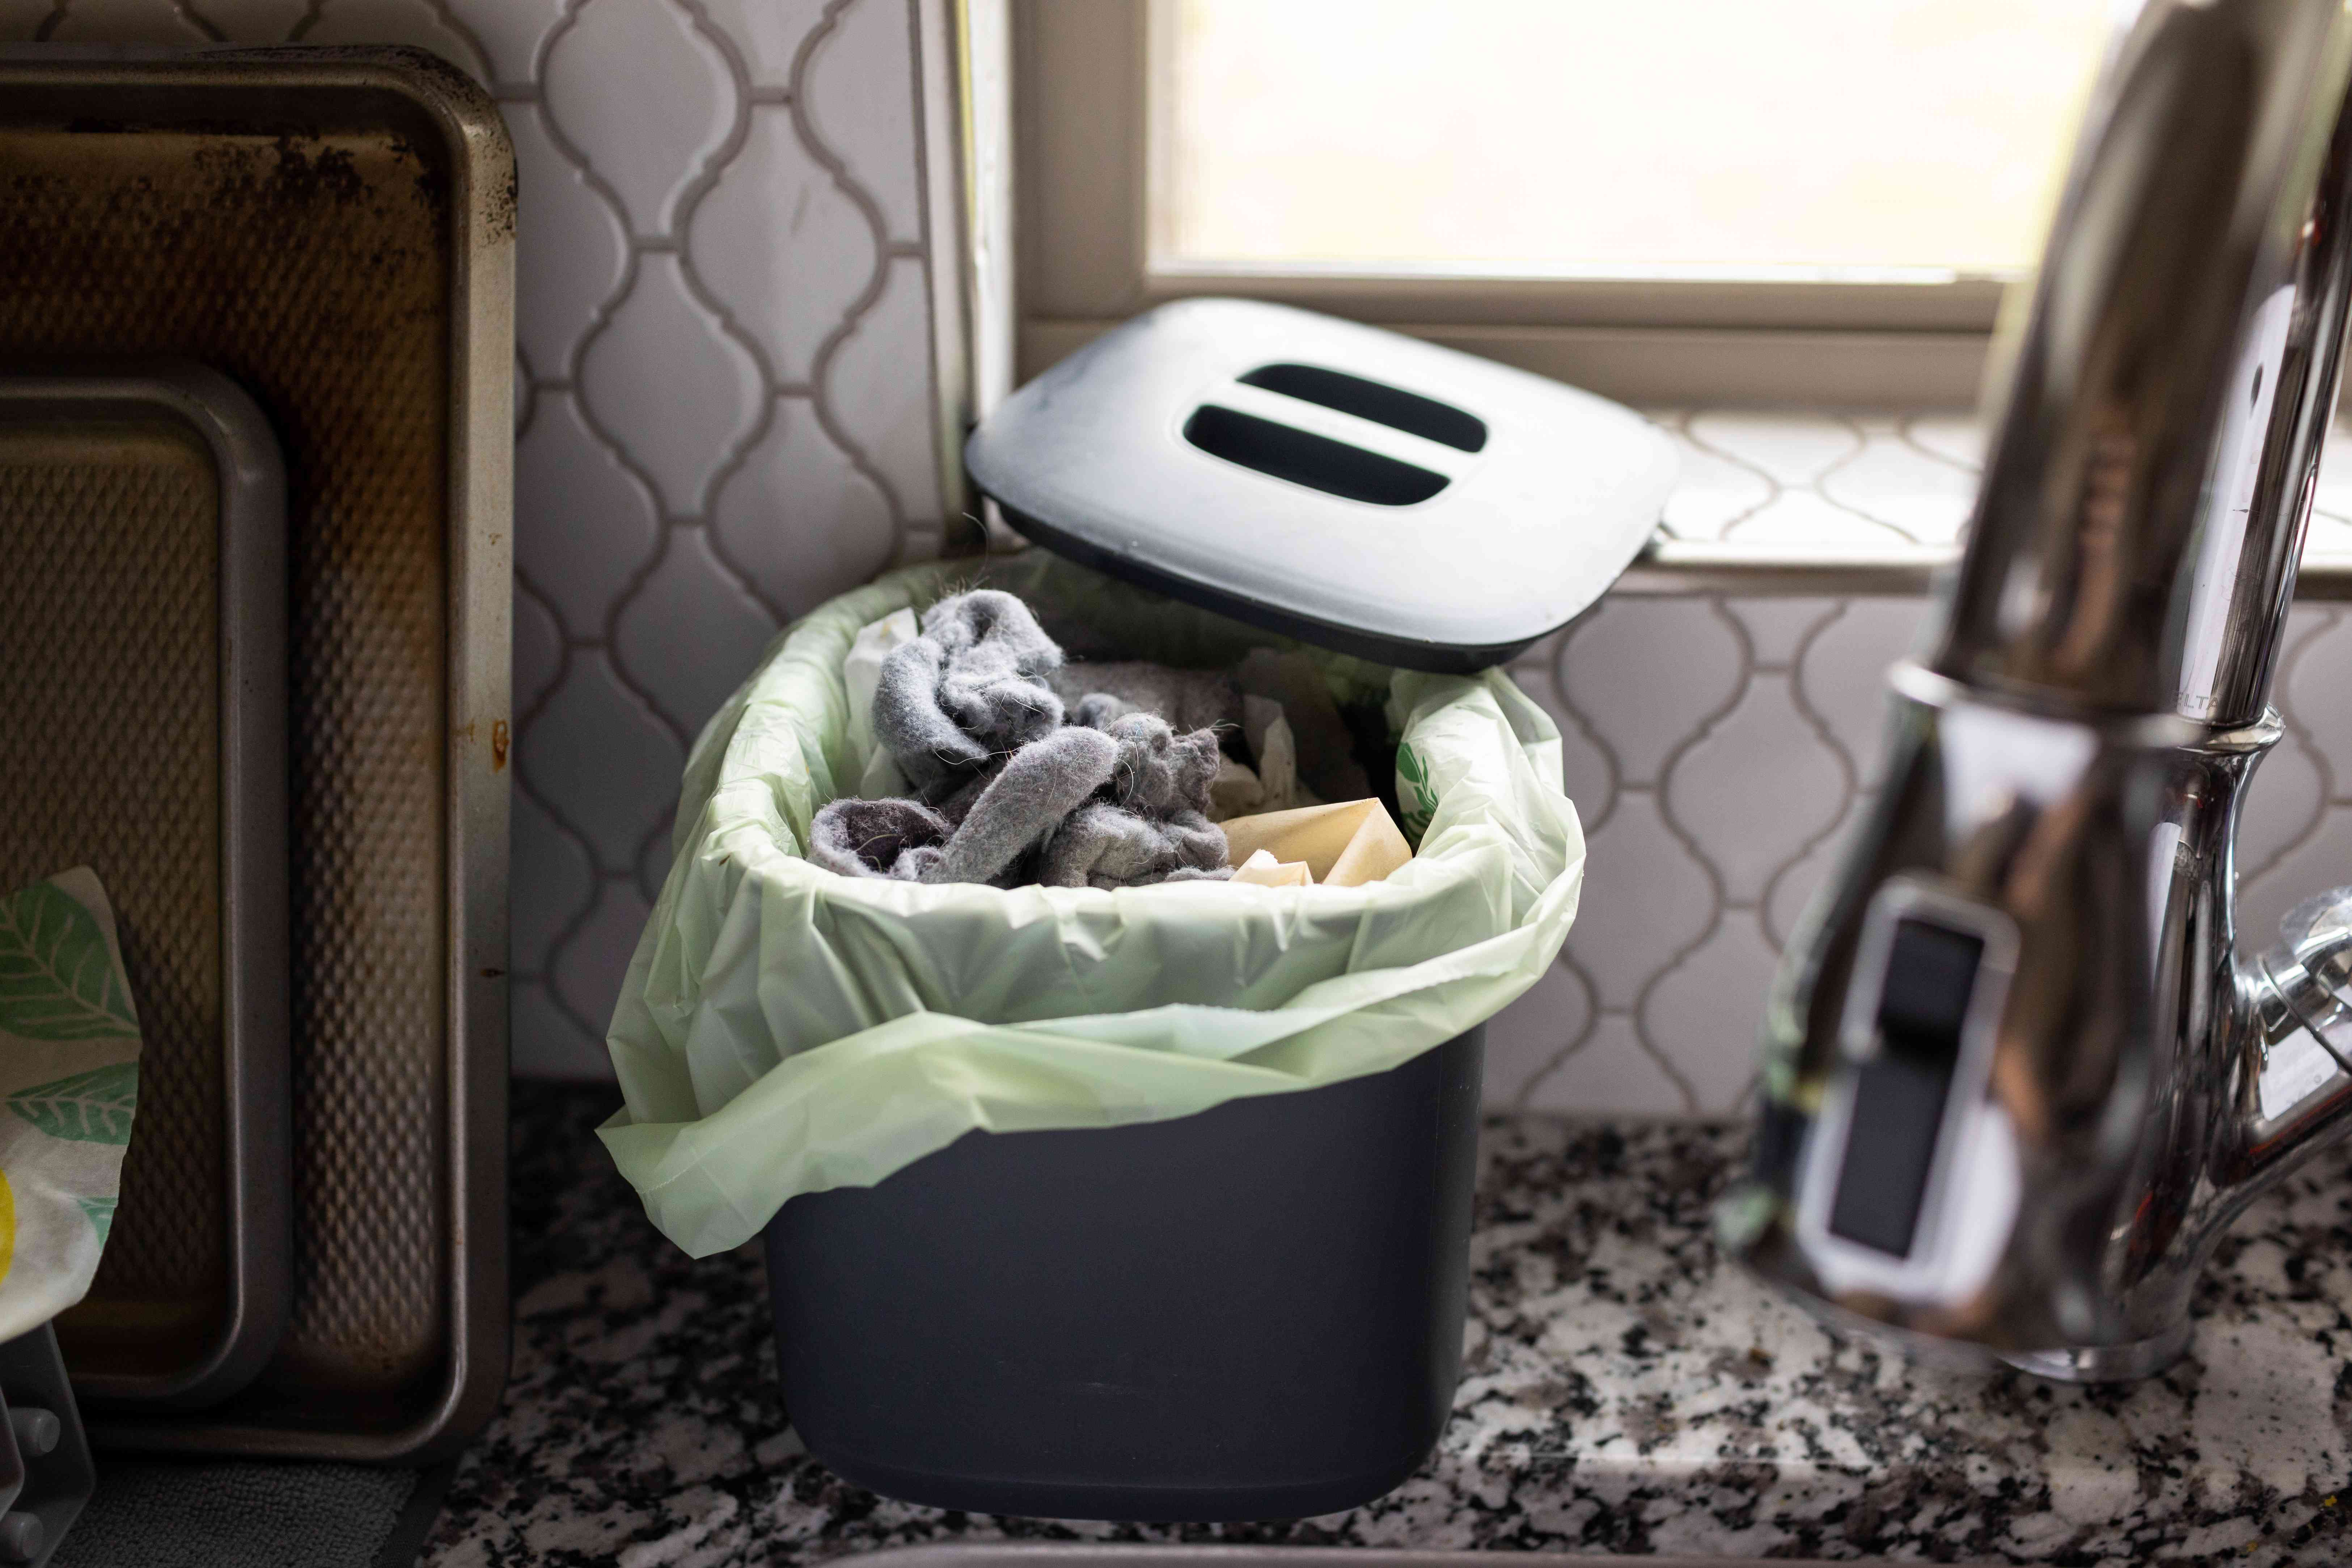 used gray dryer lint is stuffed in kitchen compost bin next to sink